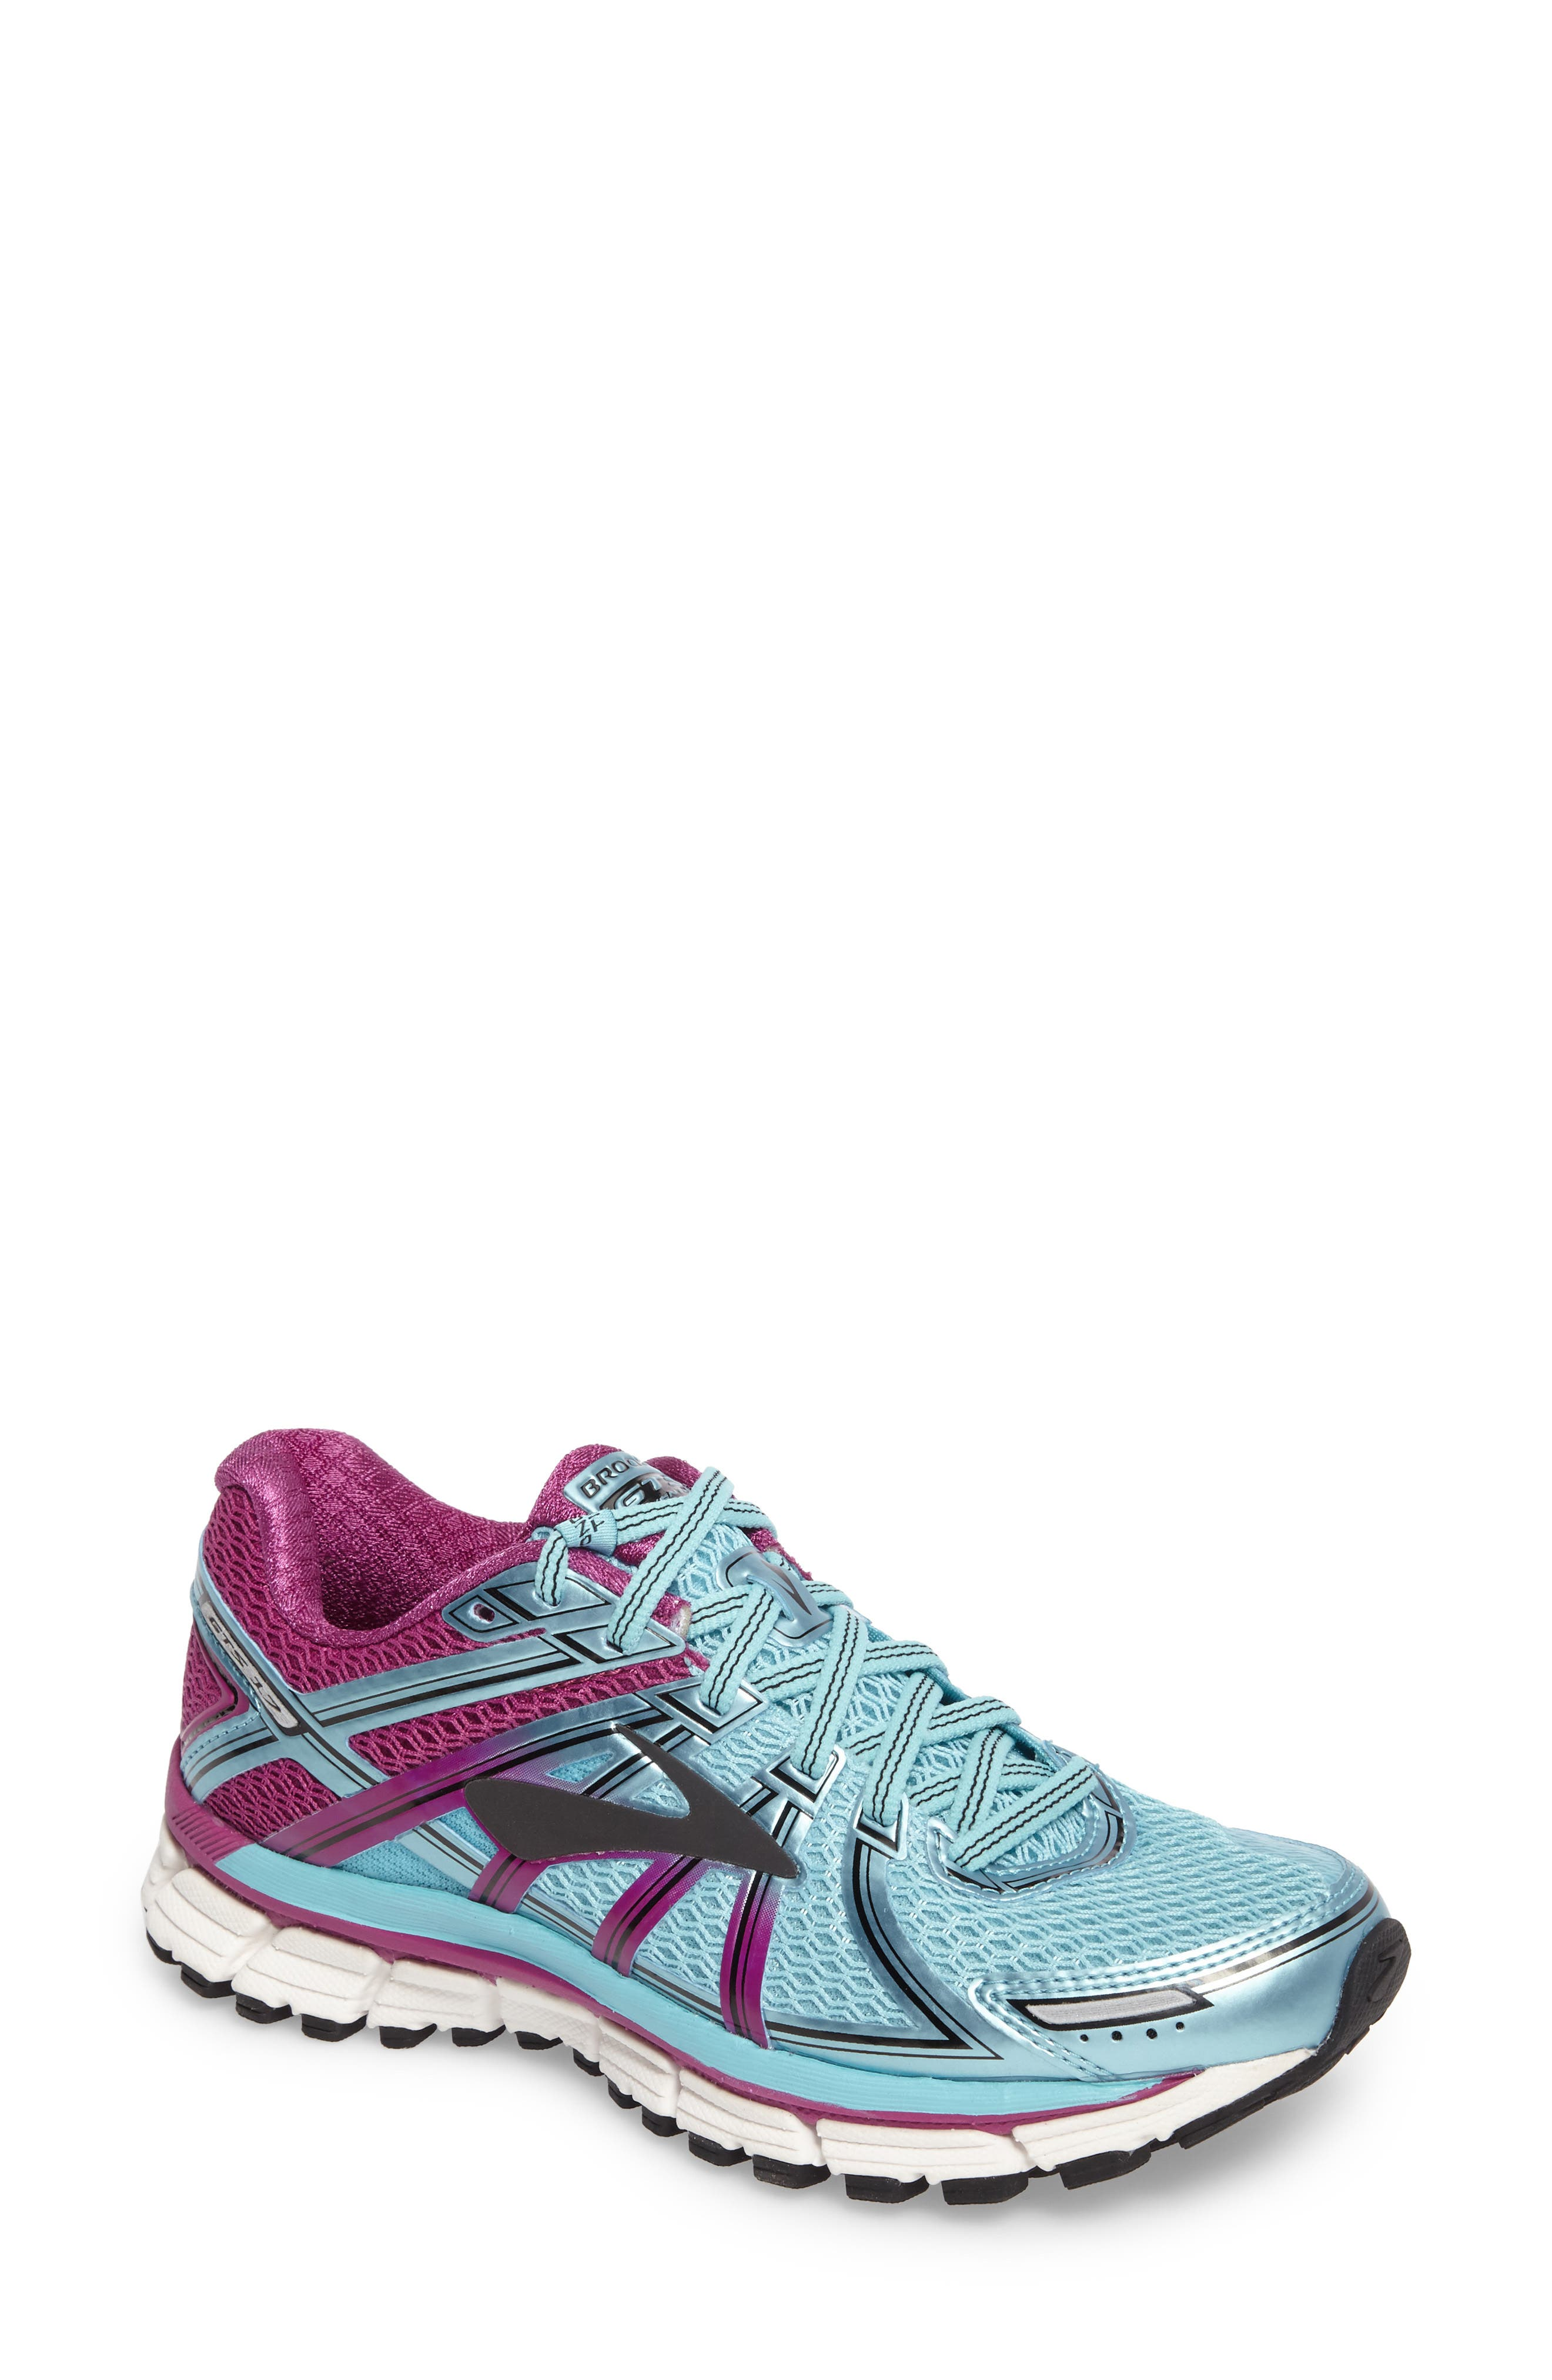 Alternate Image 1 Selected - Brooks Adrenaline GTS 17 Running Shoe (Women)